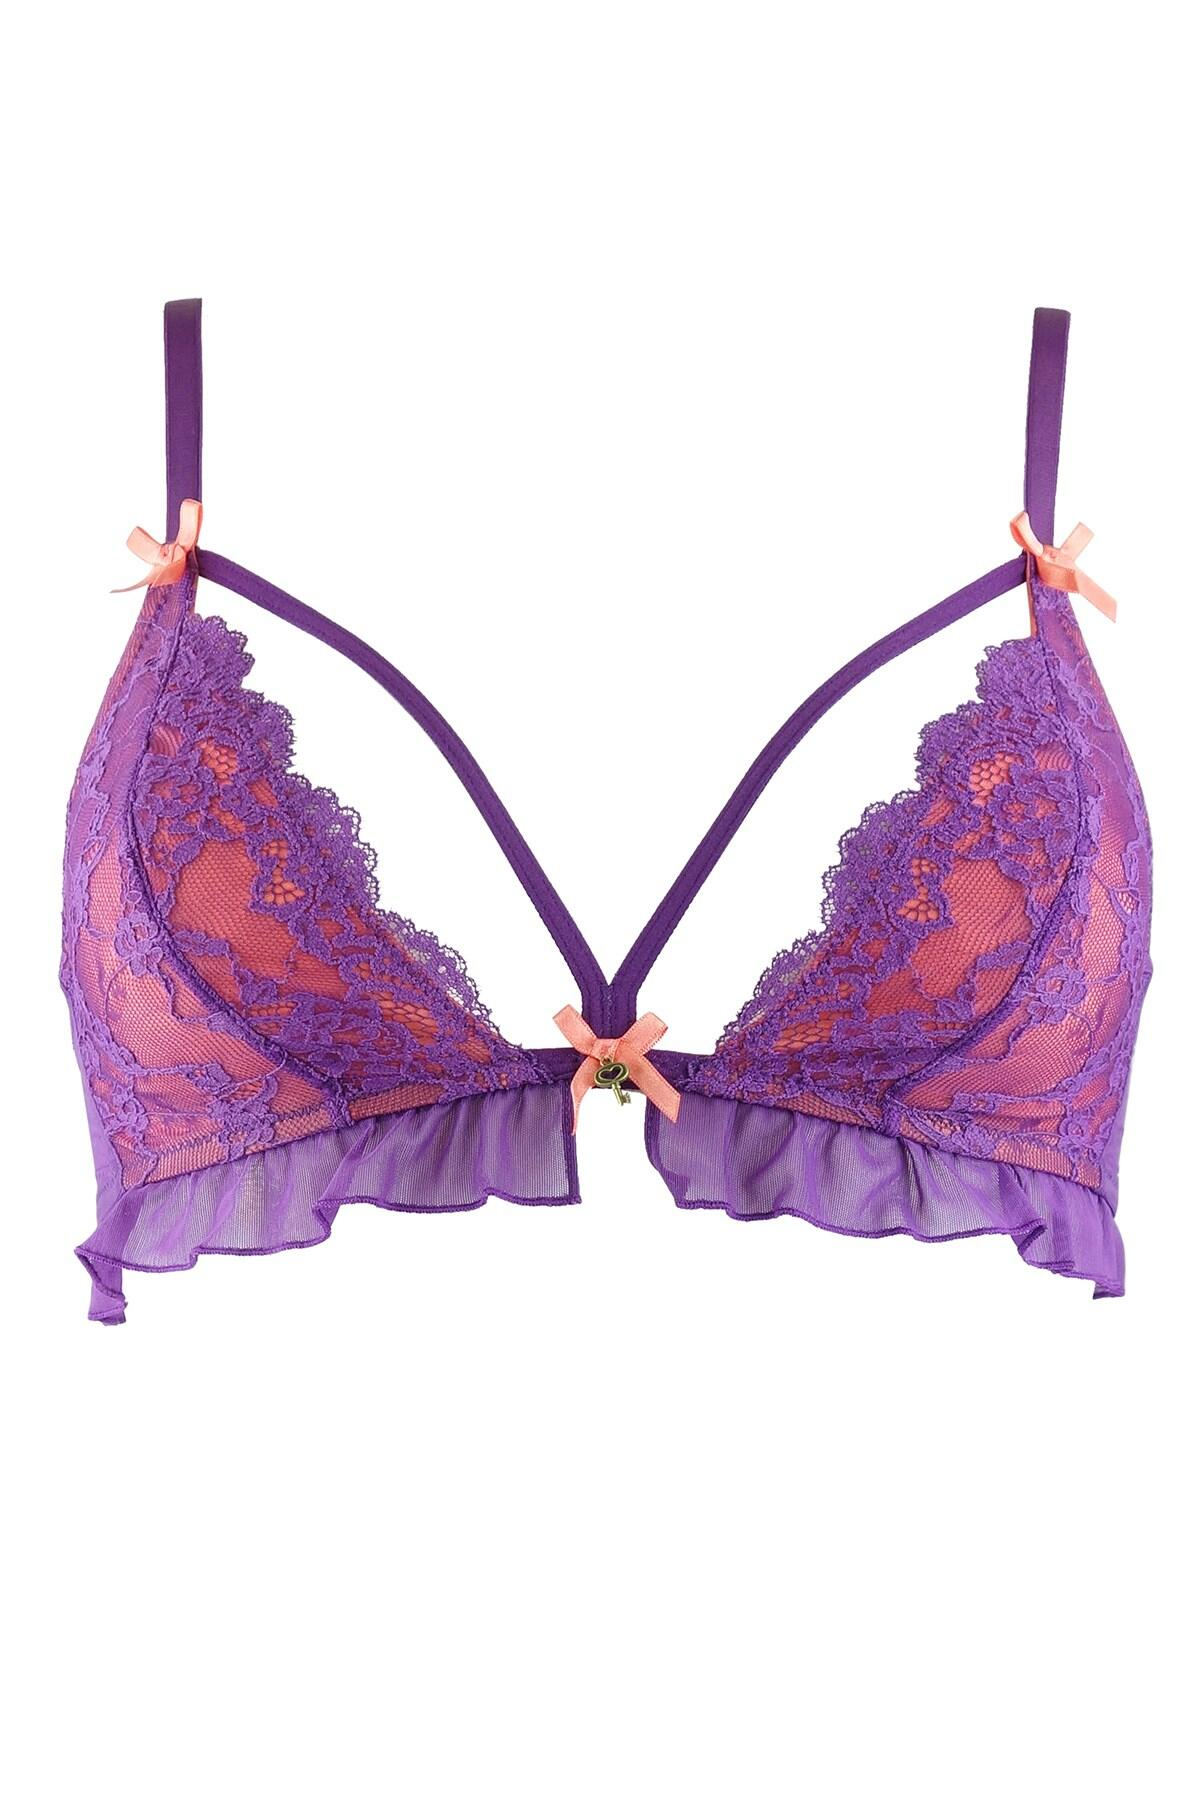 Forbidden Bralette - Purple